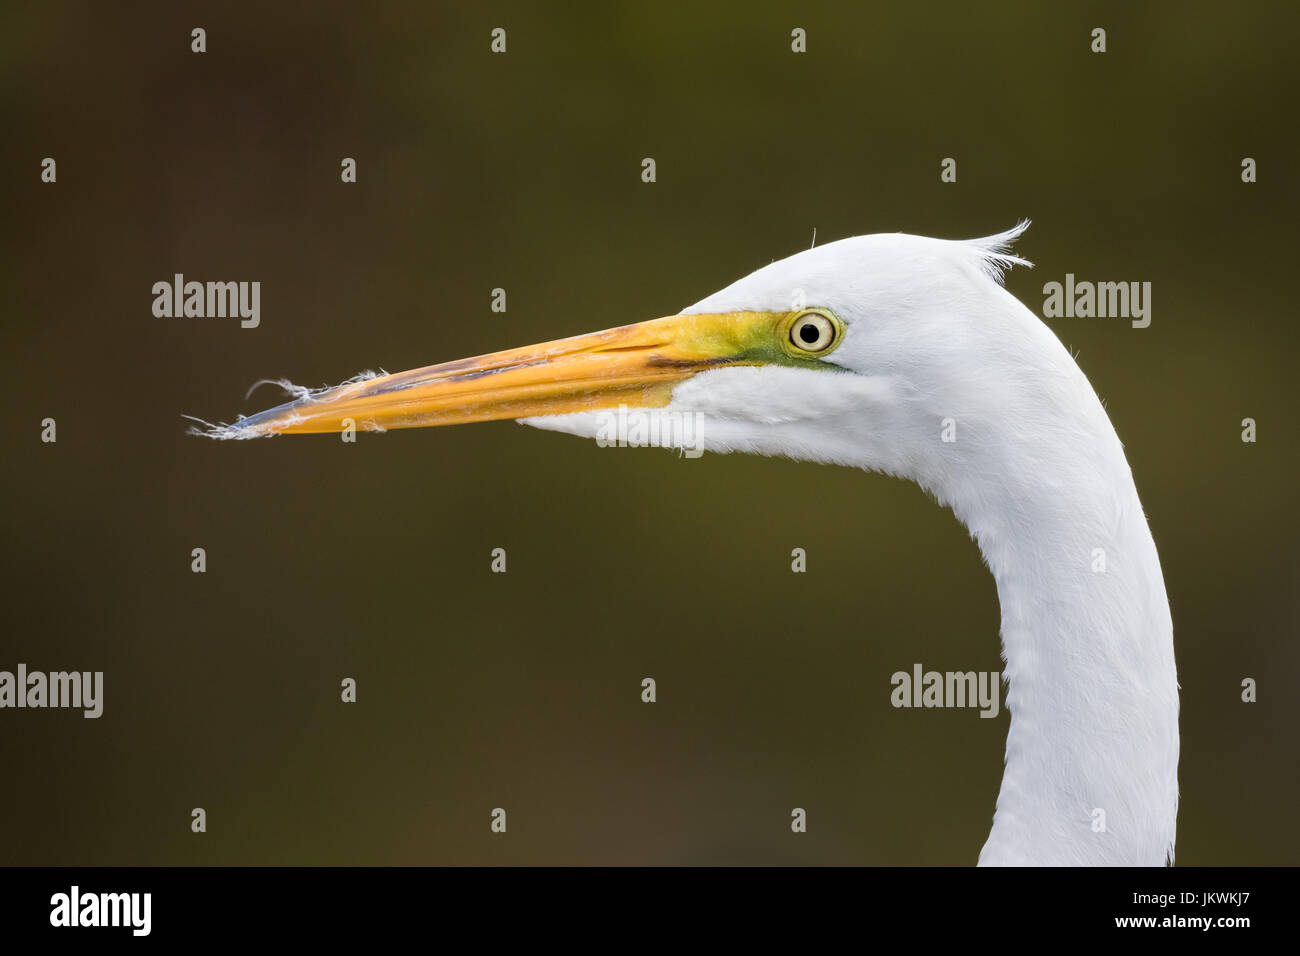 This close-up portrait of a wild great egret was taken in March at Gatorland in Florida, USA. Stock Photo